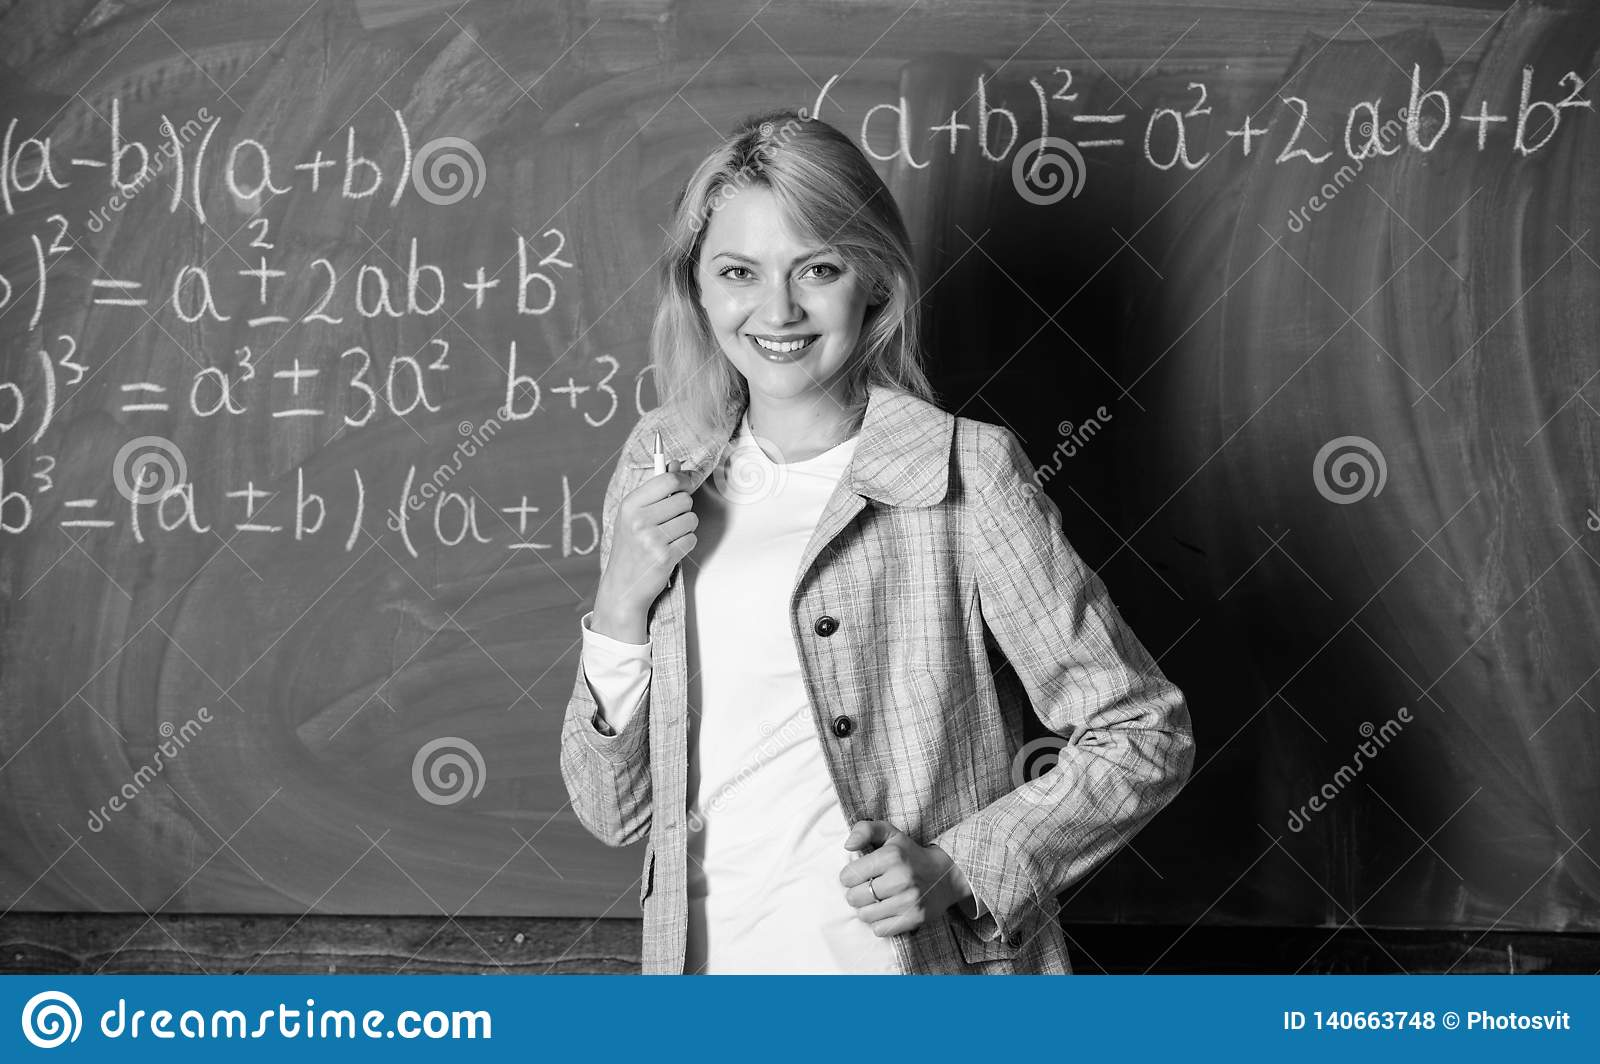 Back to school concept. Woman smiling educator classroom chalkboard background. Working conditions which prospective